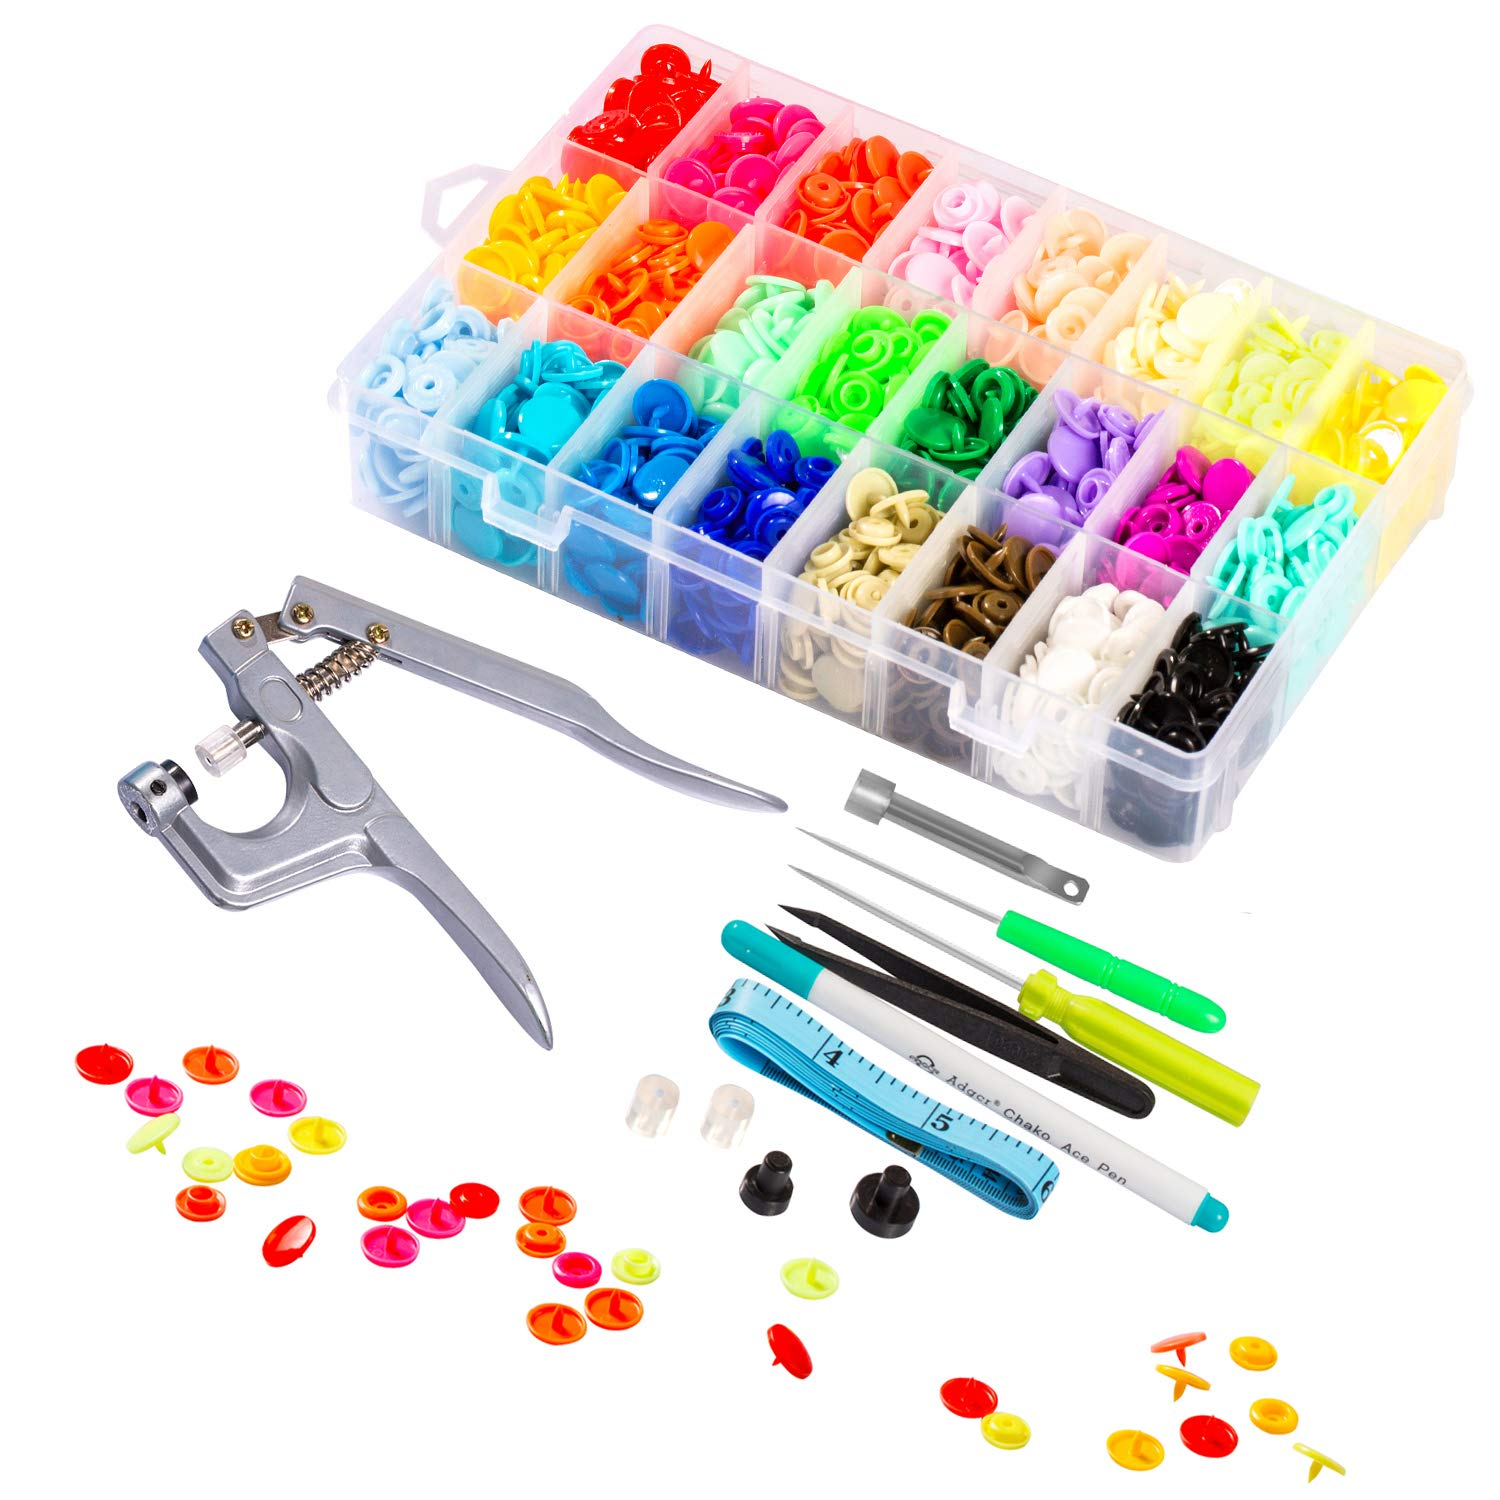 Lynda Snaps and Snap Pliers Set, 360 Sets T5 Plastic Buttons for Sewing and Crafting by LYNDA